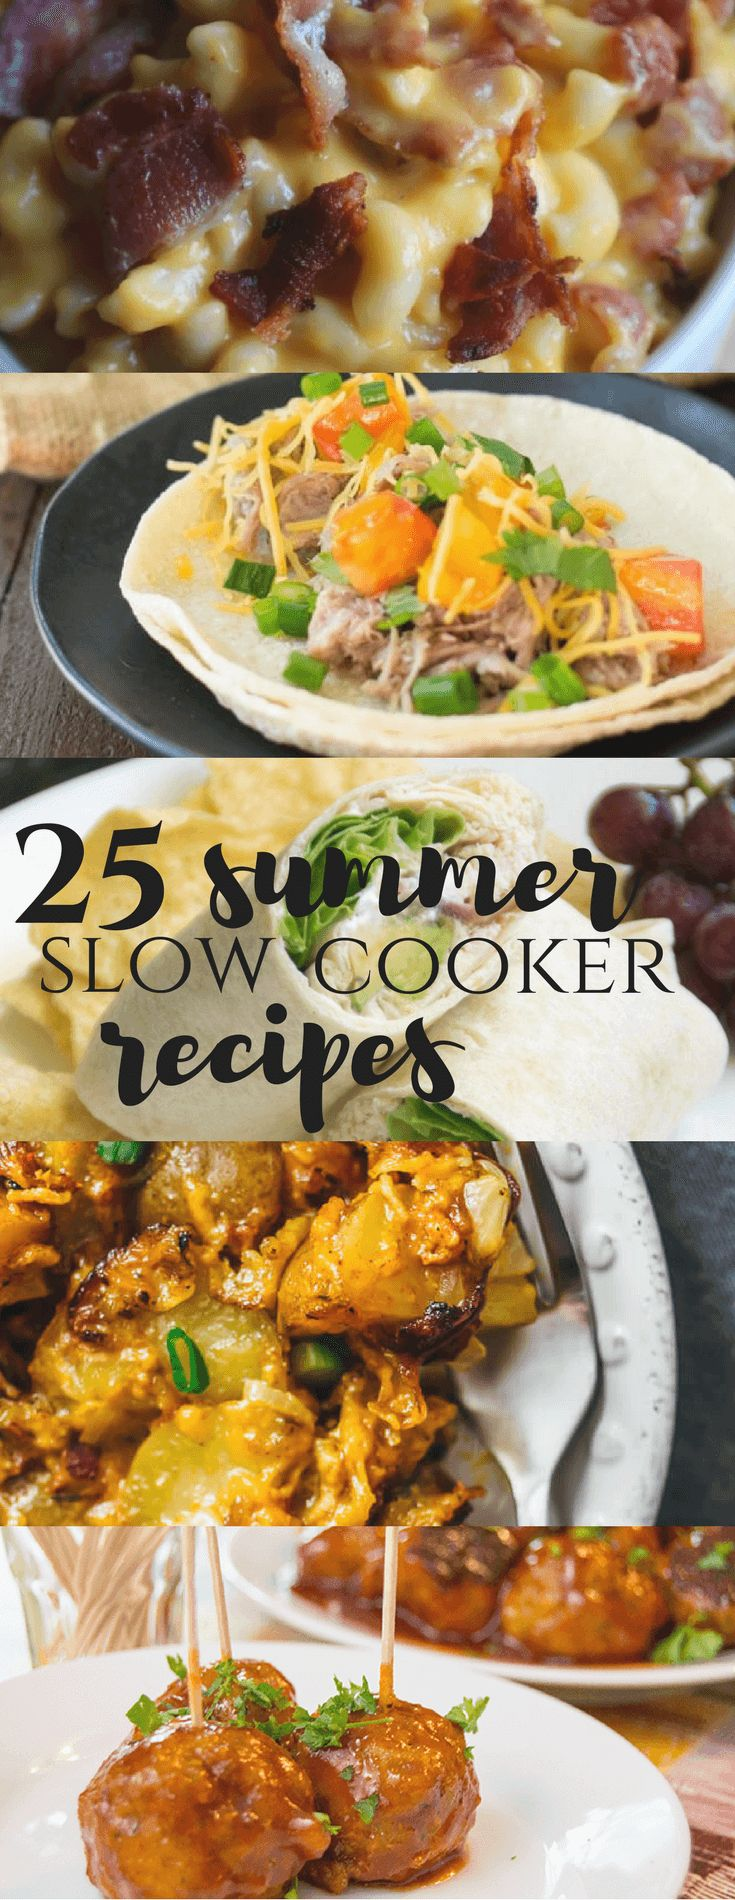 pizza, naan, BBQ, chicken, beef, potatoes, spicy, sanwdich, wrap, lunch, dinner, tacos, canritas, meatballs, turkey, 25 Summer Slow Cooker Recipes